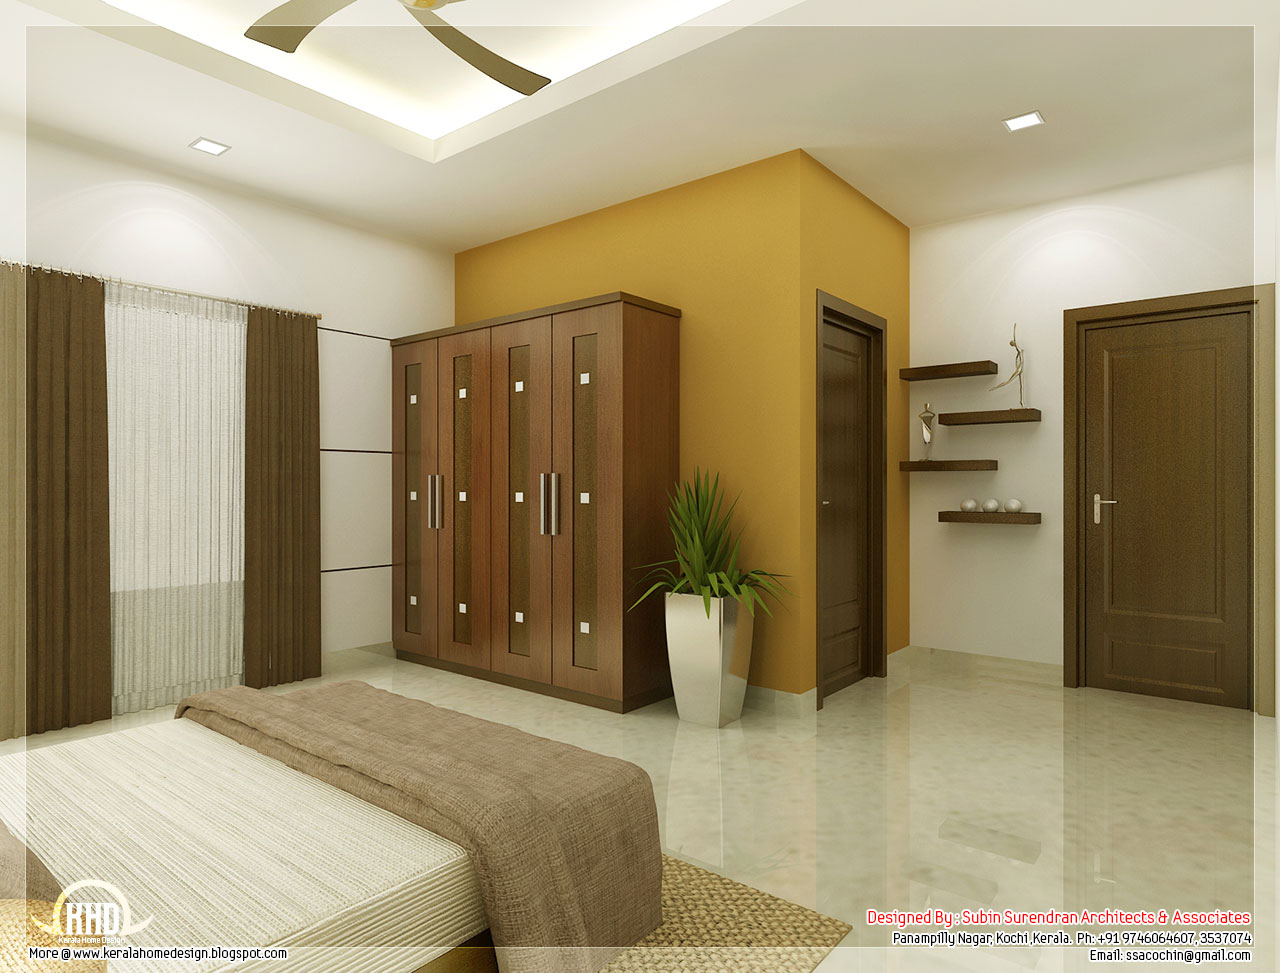 Beautiful bedroom interior designs kerala house design for Beautiful interior designs of houses